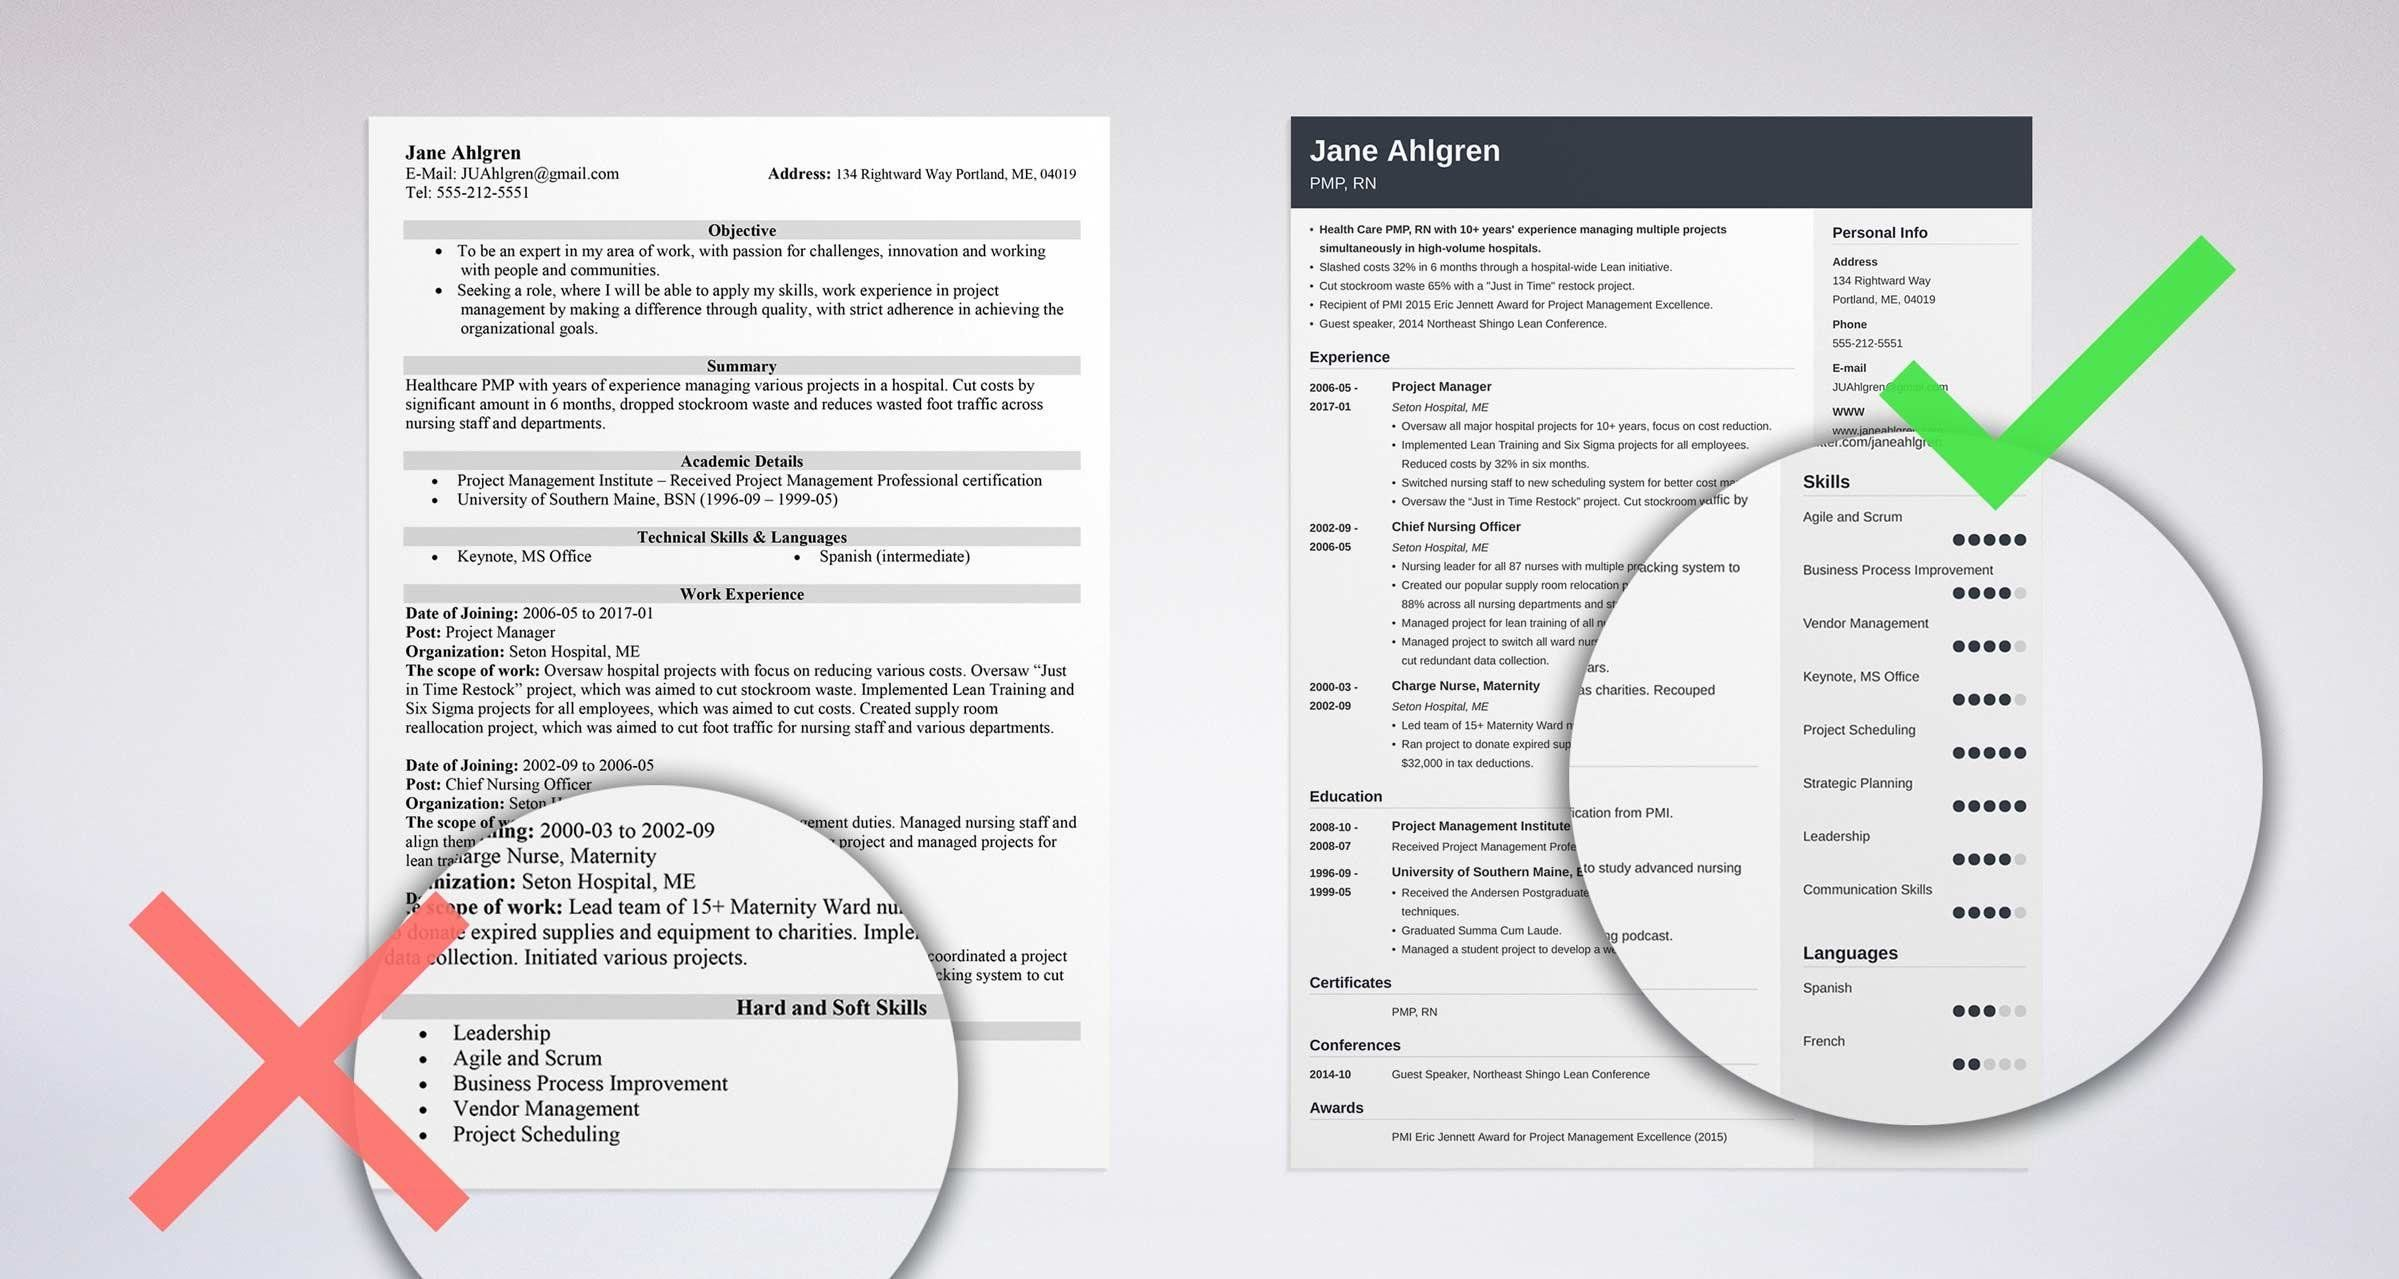 99 Key Skills For A Resume Best List Of Examples For All Types Of Jobs Resume Skills Interpersonal Skills Time Management Skills